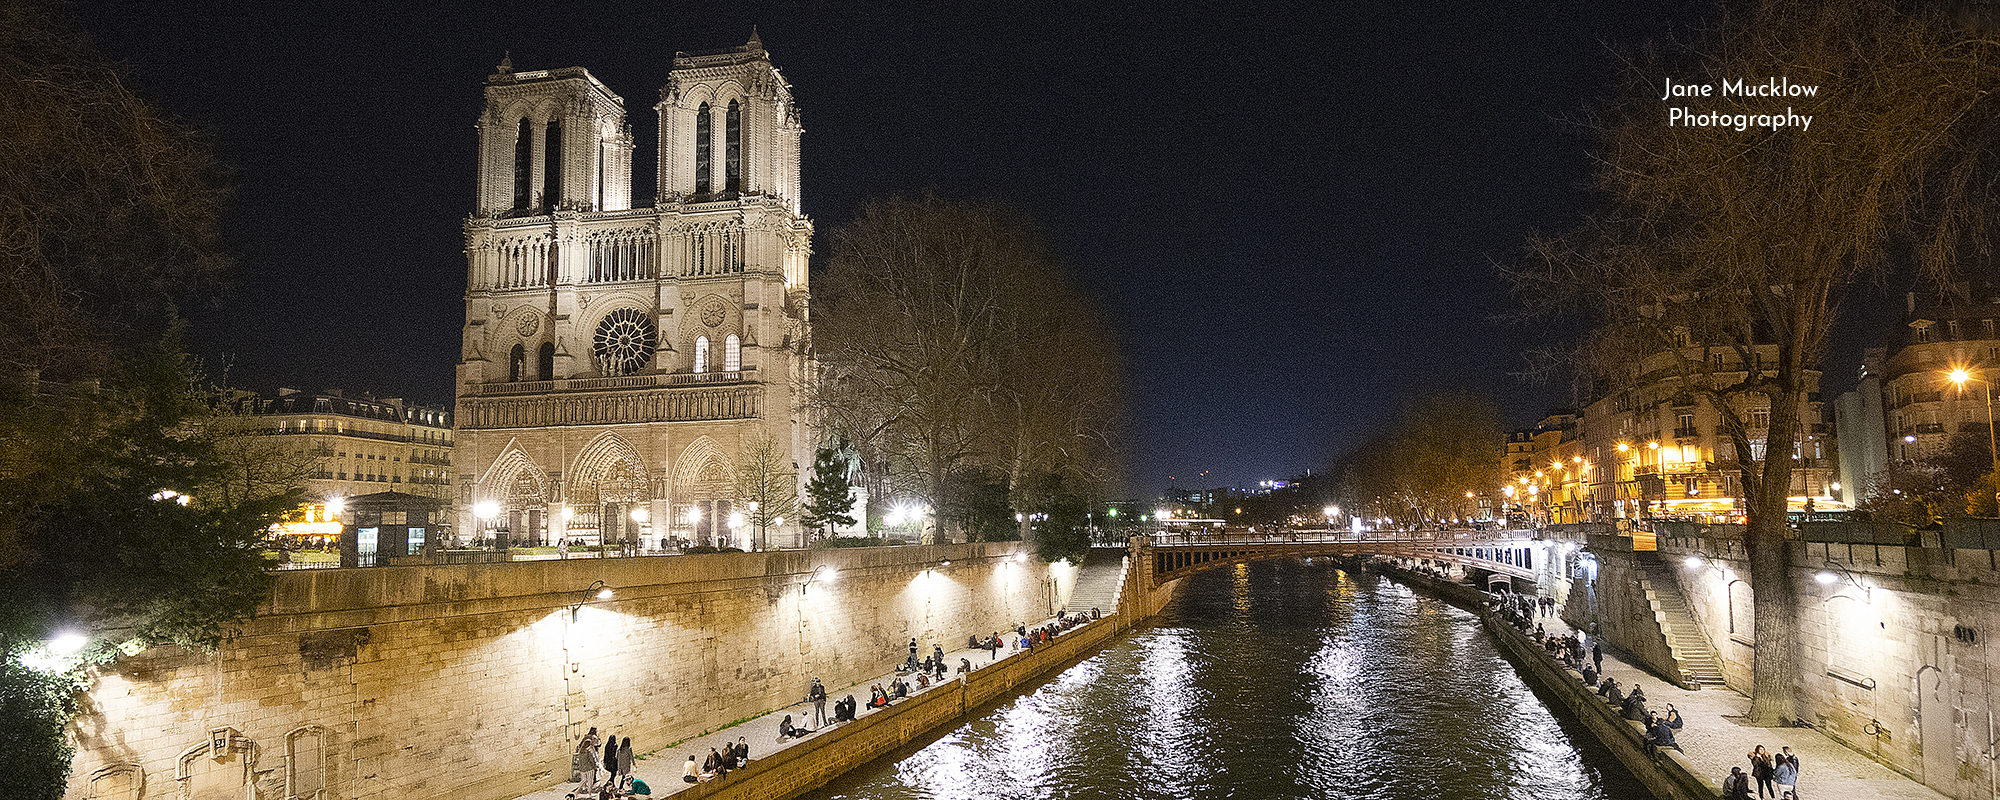 Photo by Jane Mucklow of Notre Dame and the River Seine in Paris, at night, available as a canvas for your wall.